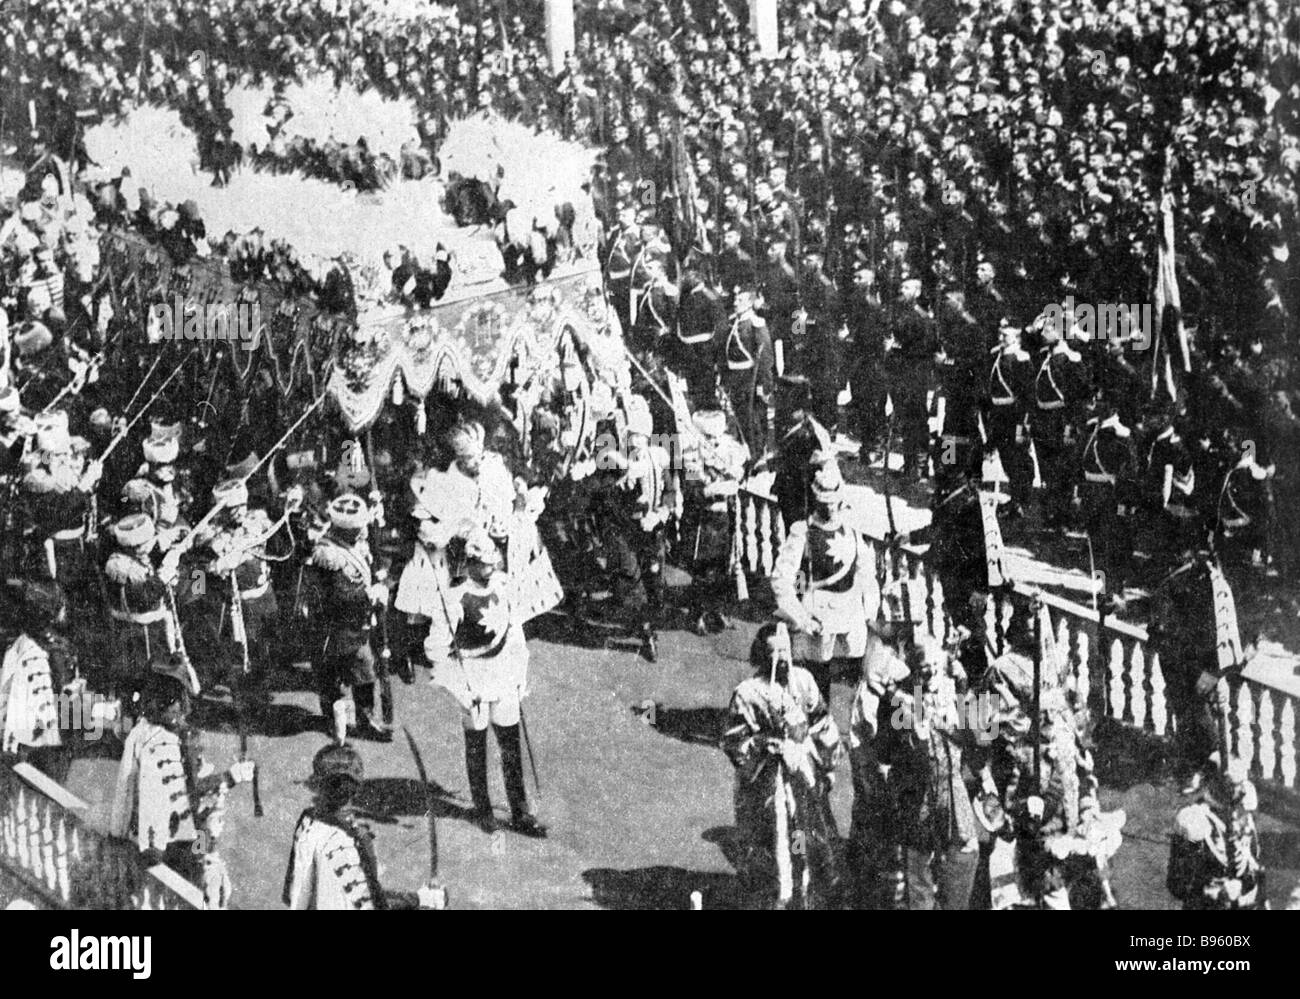 Emperor Nicholas II with the regalia under a canopy in a Kremlin procession - Stock Image